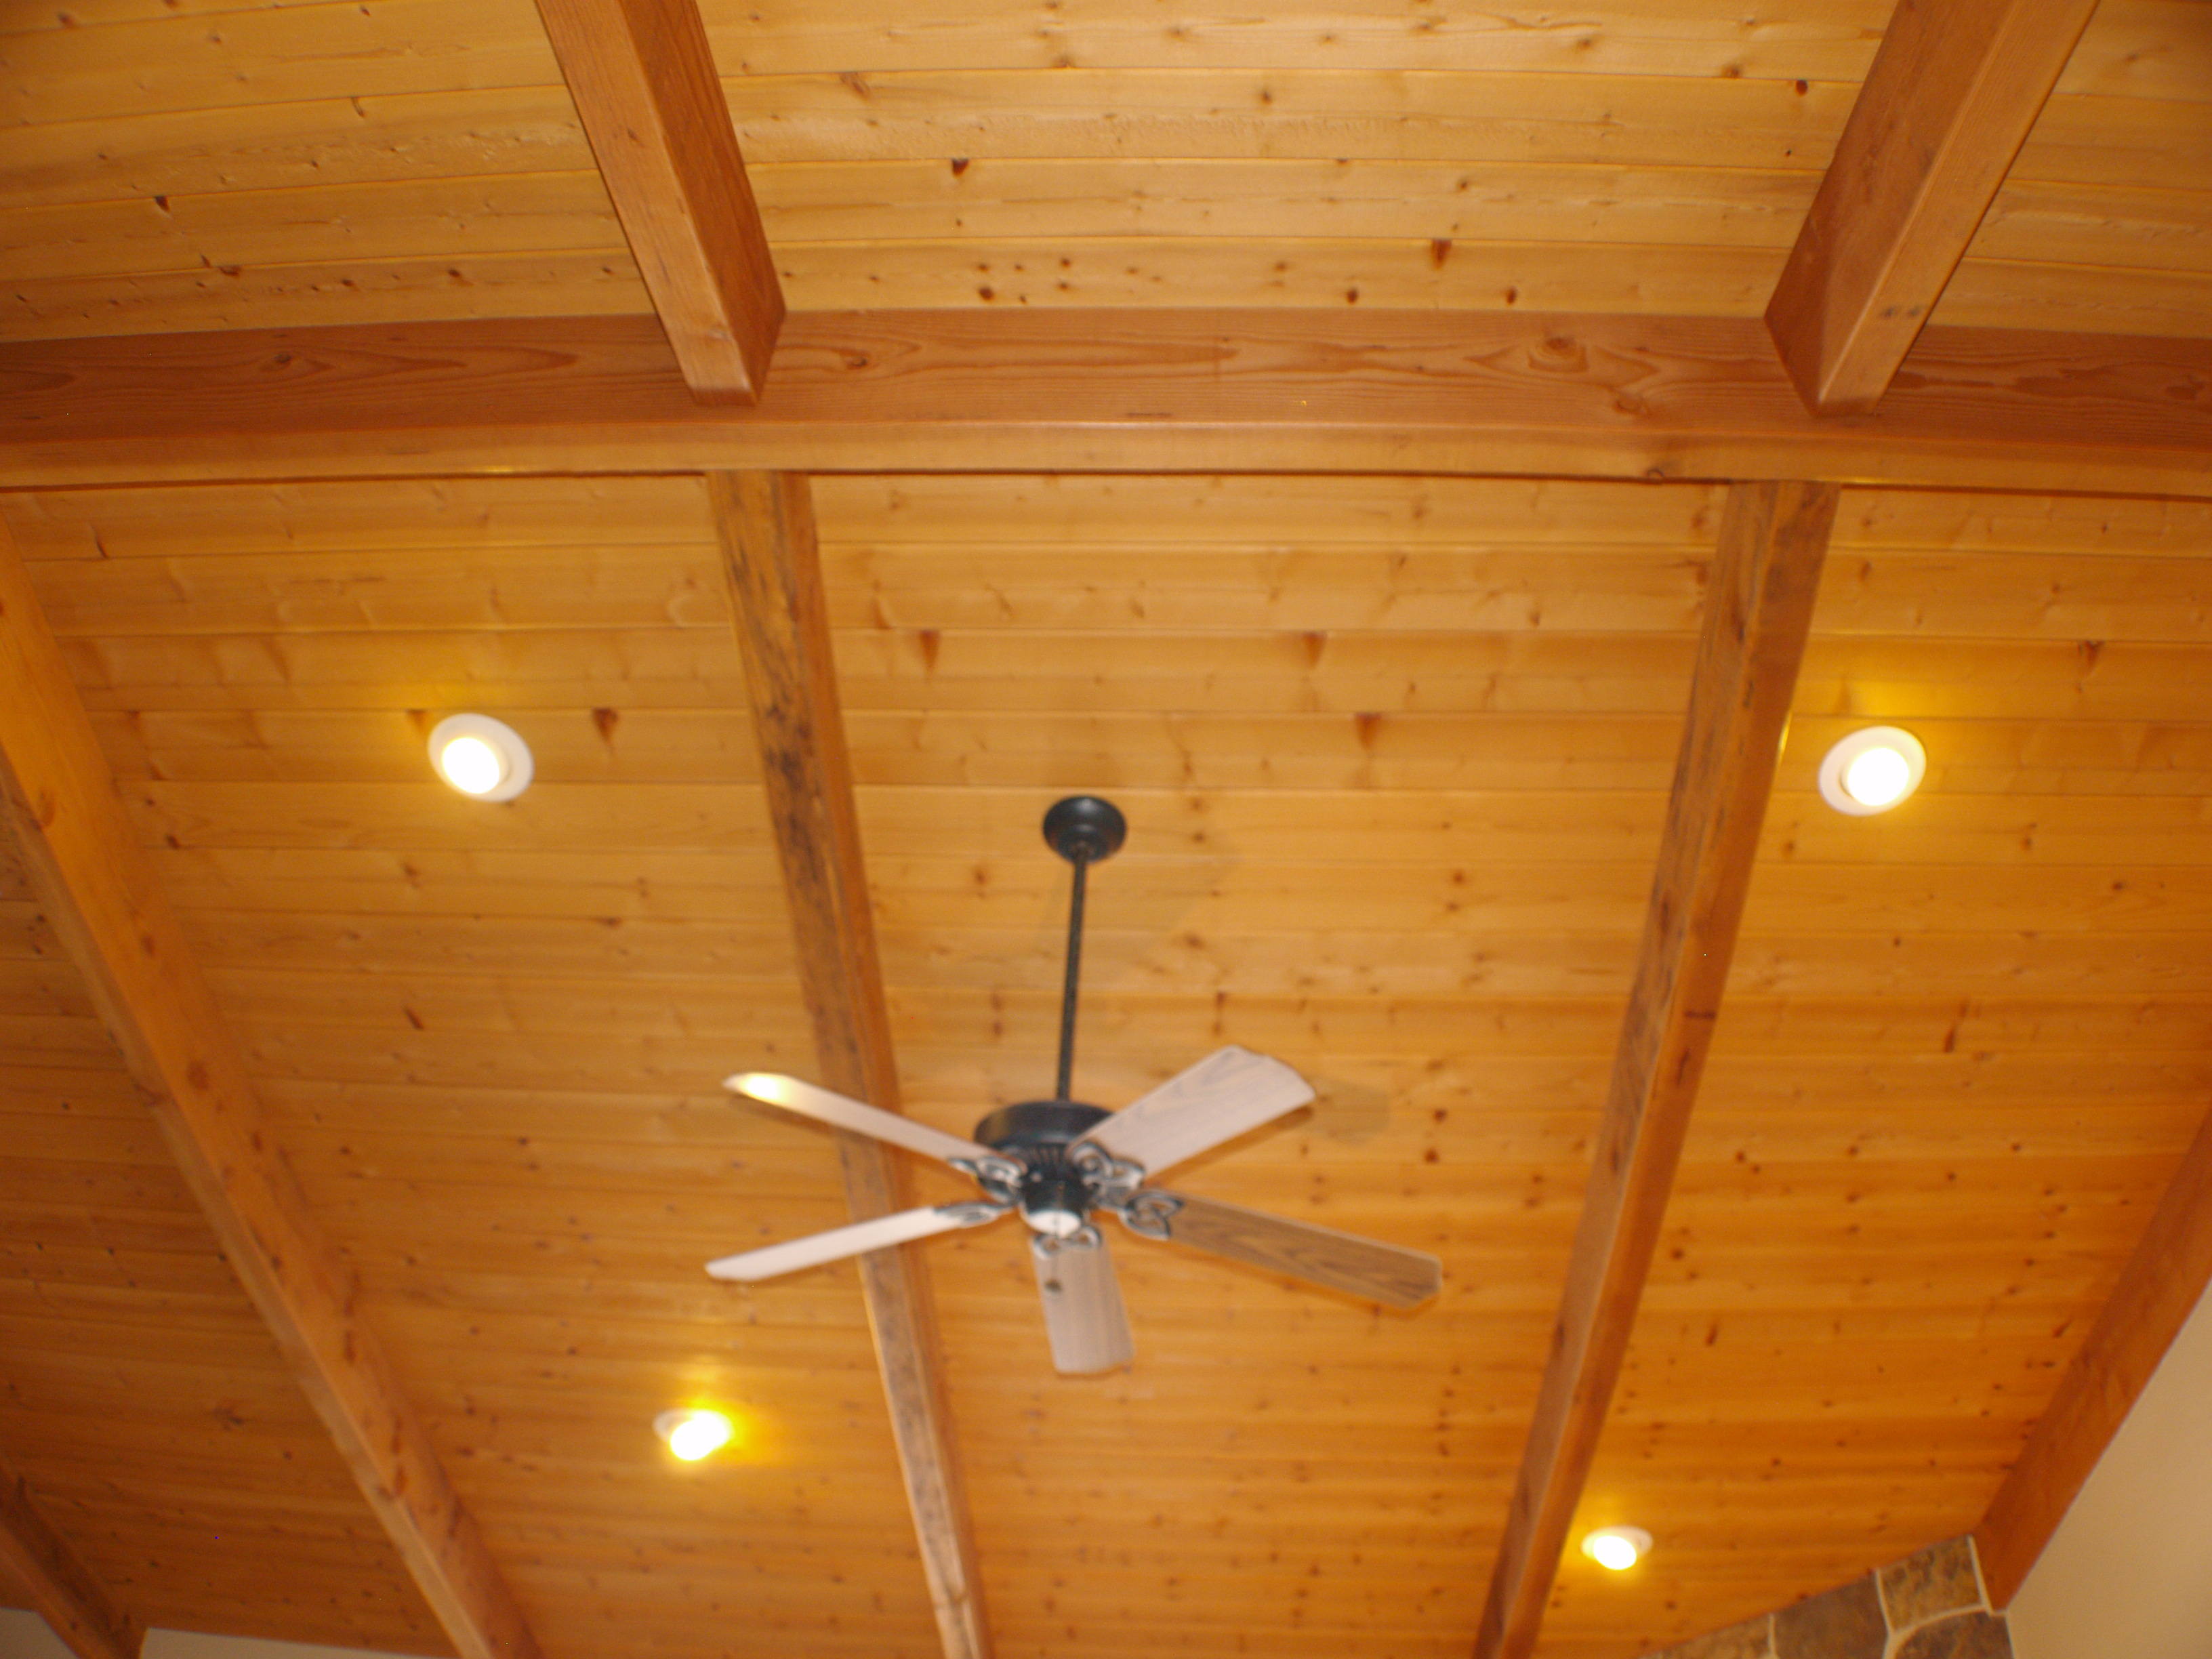 Featured Image of Wooden Ceiling Panel With Ceiling Fan And Lighting